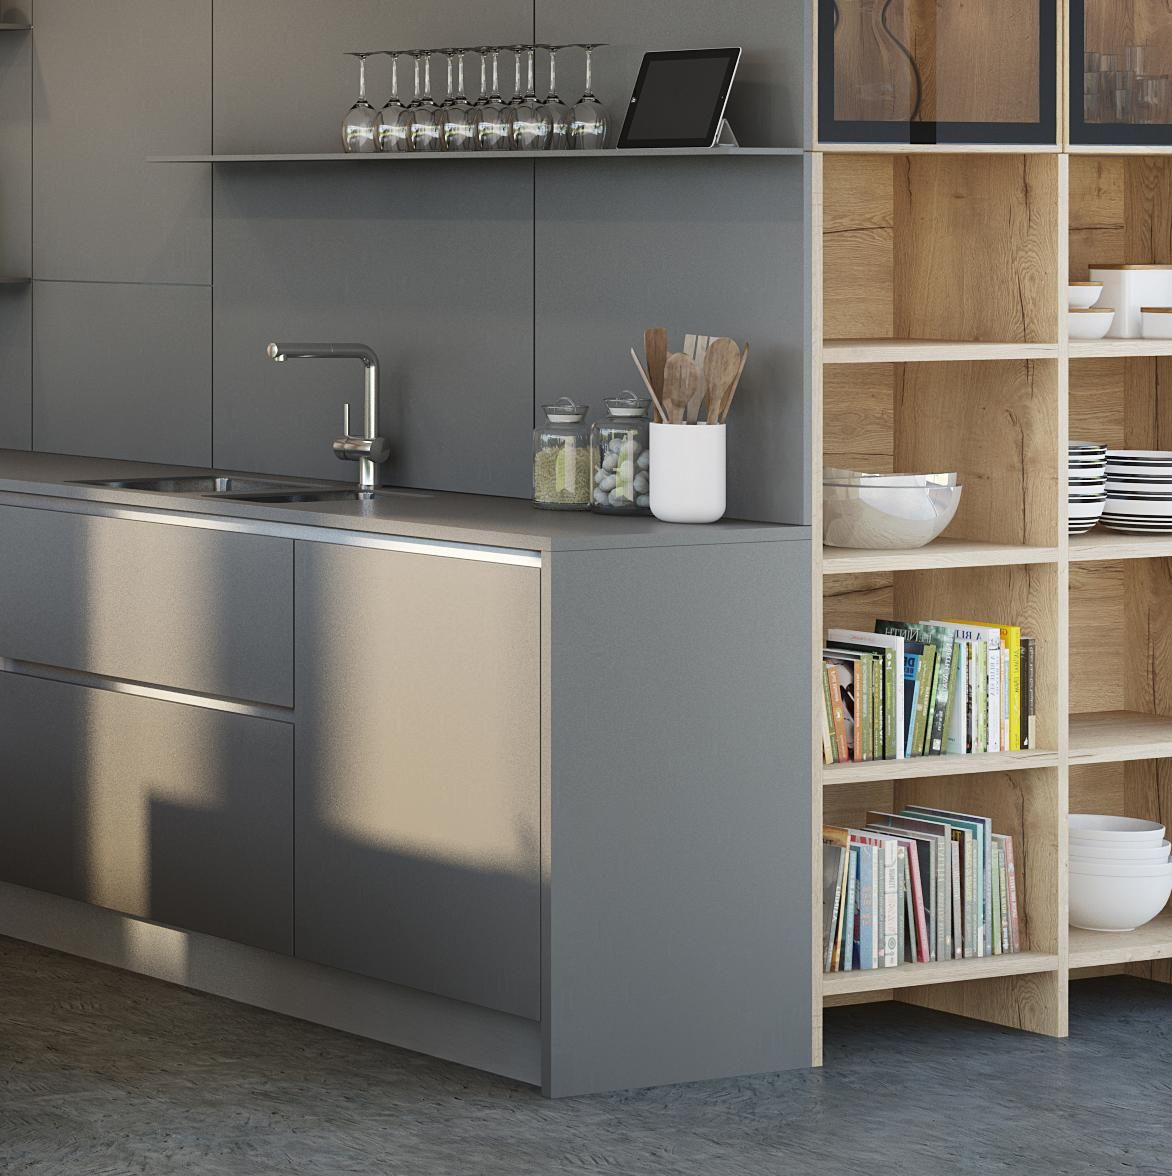 Ewe Küche ewe küche vida kitchen moderne küche highlights